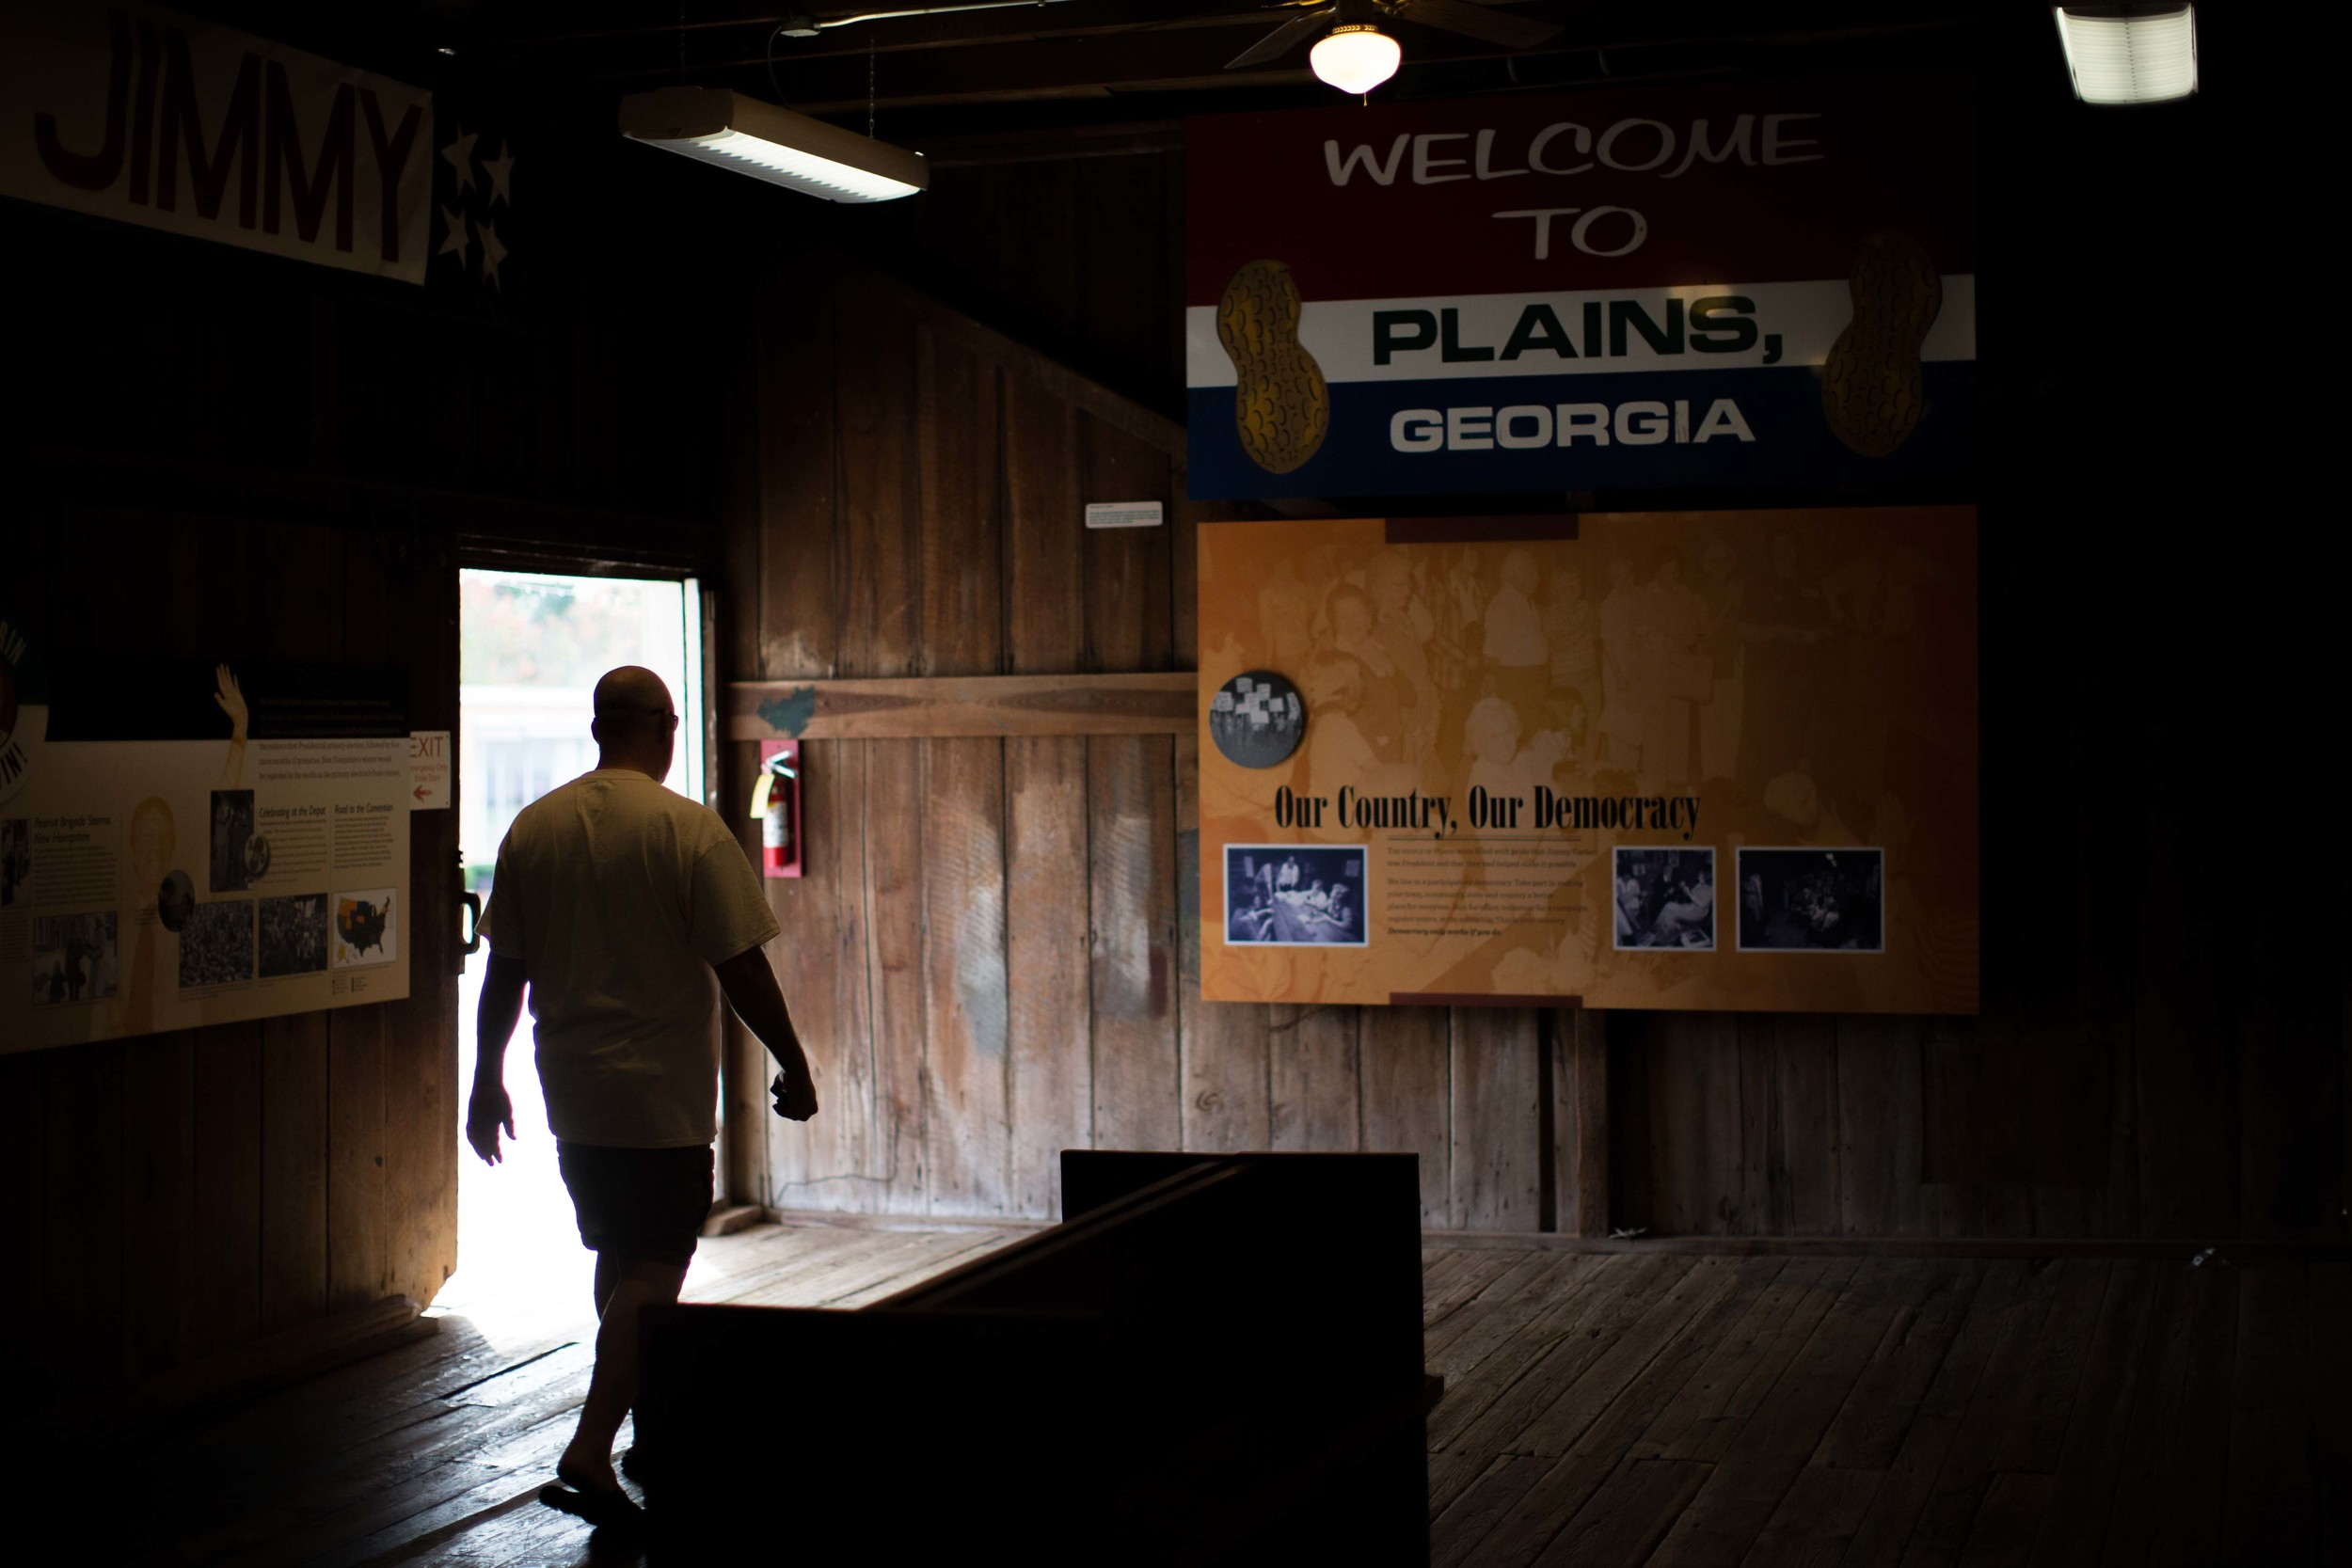 """A man walks through former President Jimmy Carters' campaign headquarters in downtown Plains, Ga.,  Sunday, Dec. 13, 2015. A recent MRI showing no cancer on Jimmy Carter's brain is """"very positive"""" news for the former president but will not end his medical treatment, doctors said. Carter, 91, announced Dec. 6 that doctors found no evidence of the four lesions discovered on his brain this summer and no signs of new cancer growth. (AP Photo/Branden Camp)"""